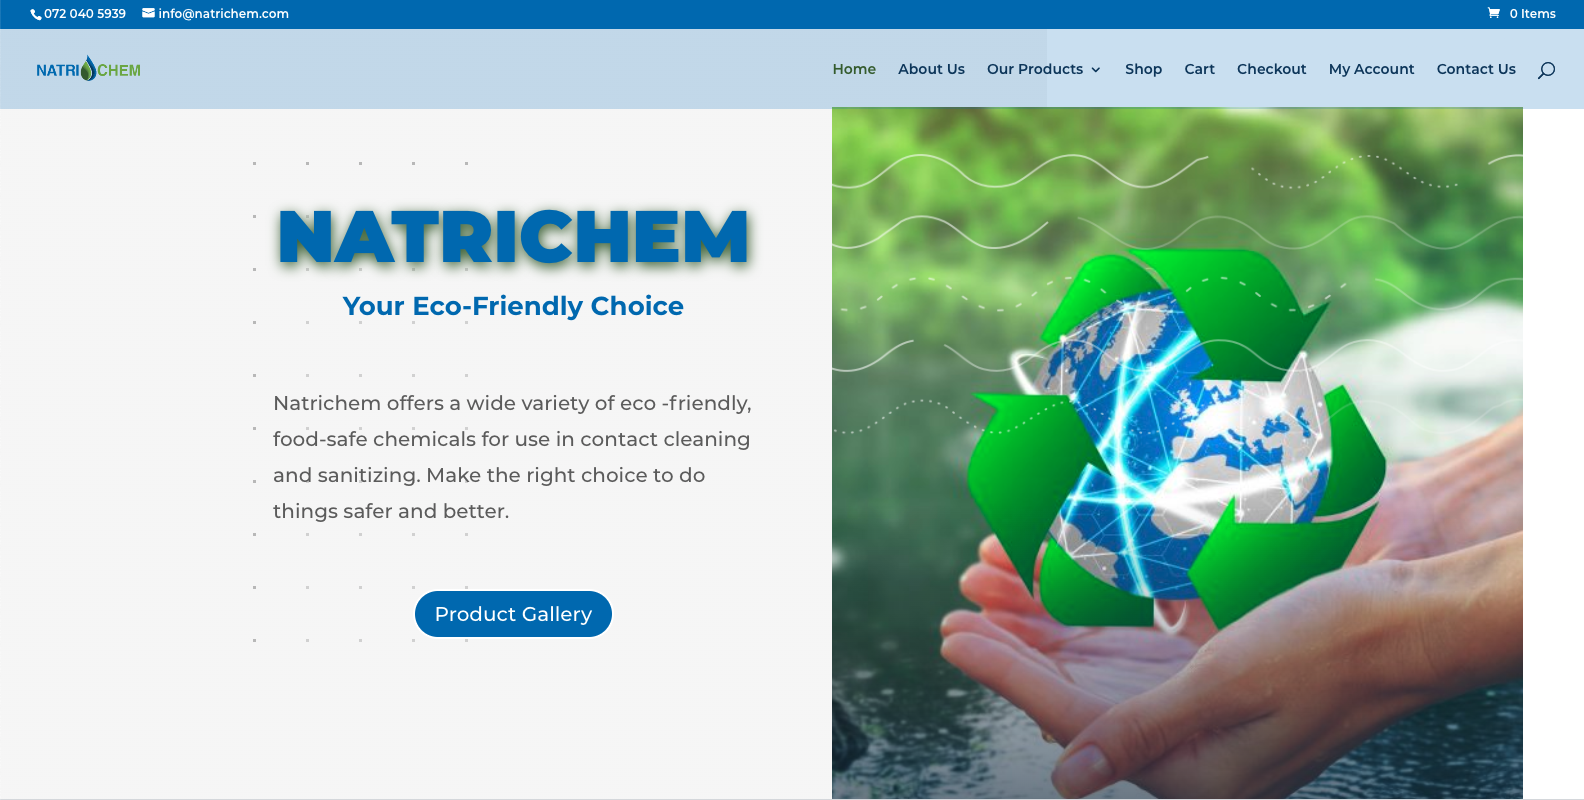 natrichem website by webboutique